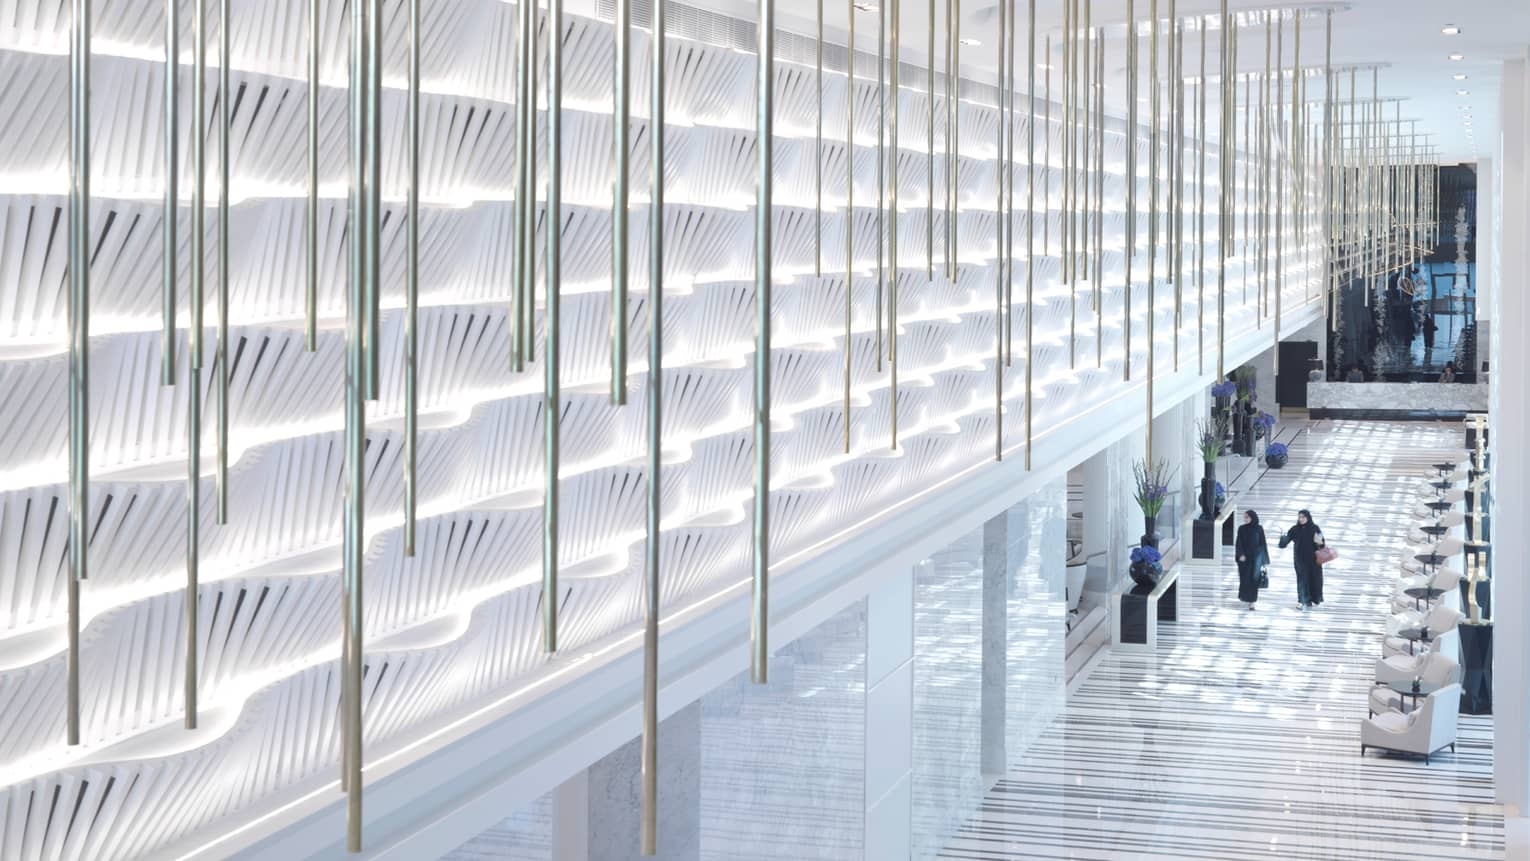 Looking down from illuminated white sculpture wall as two people walk in bright hotel lobby